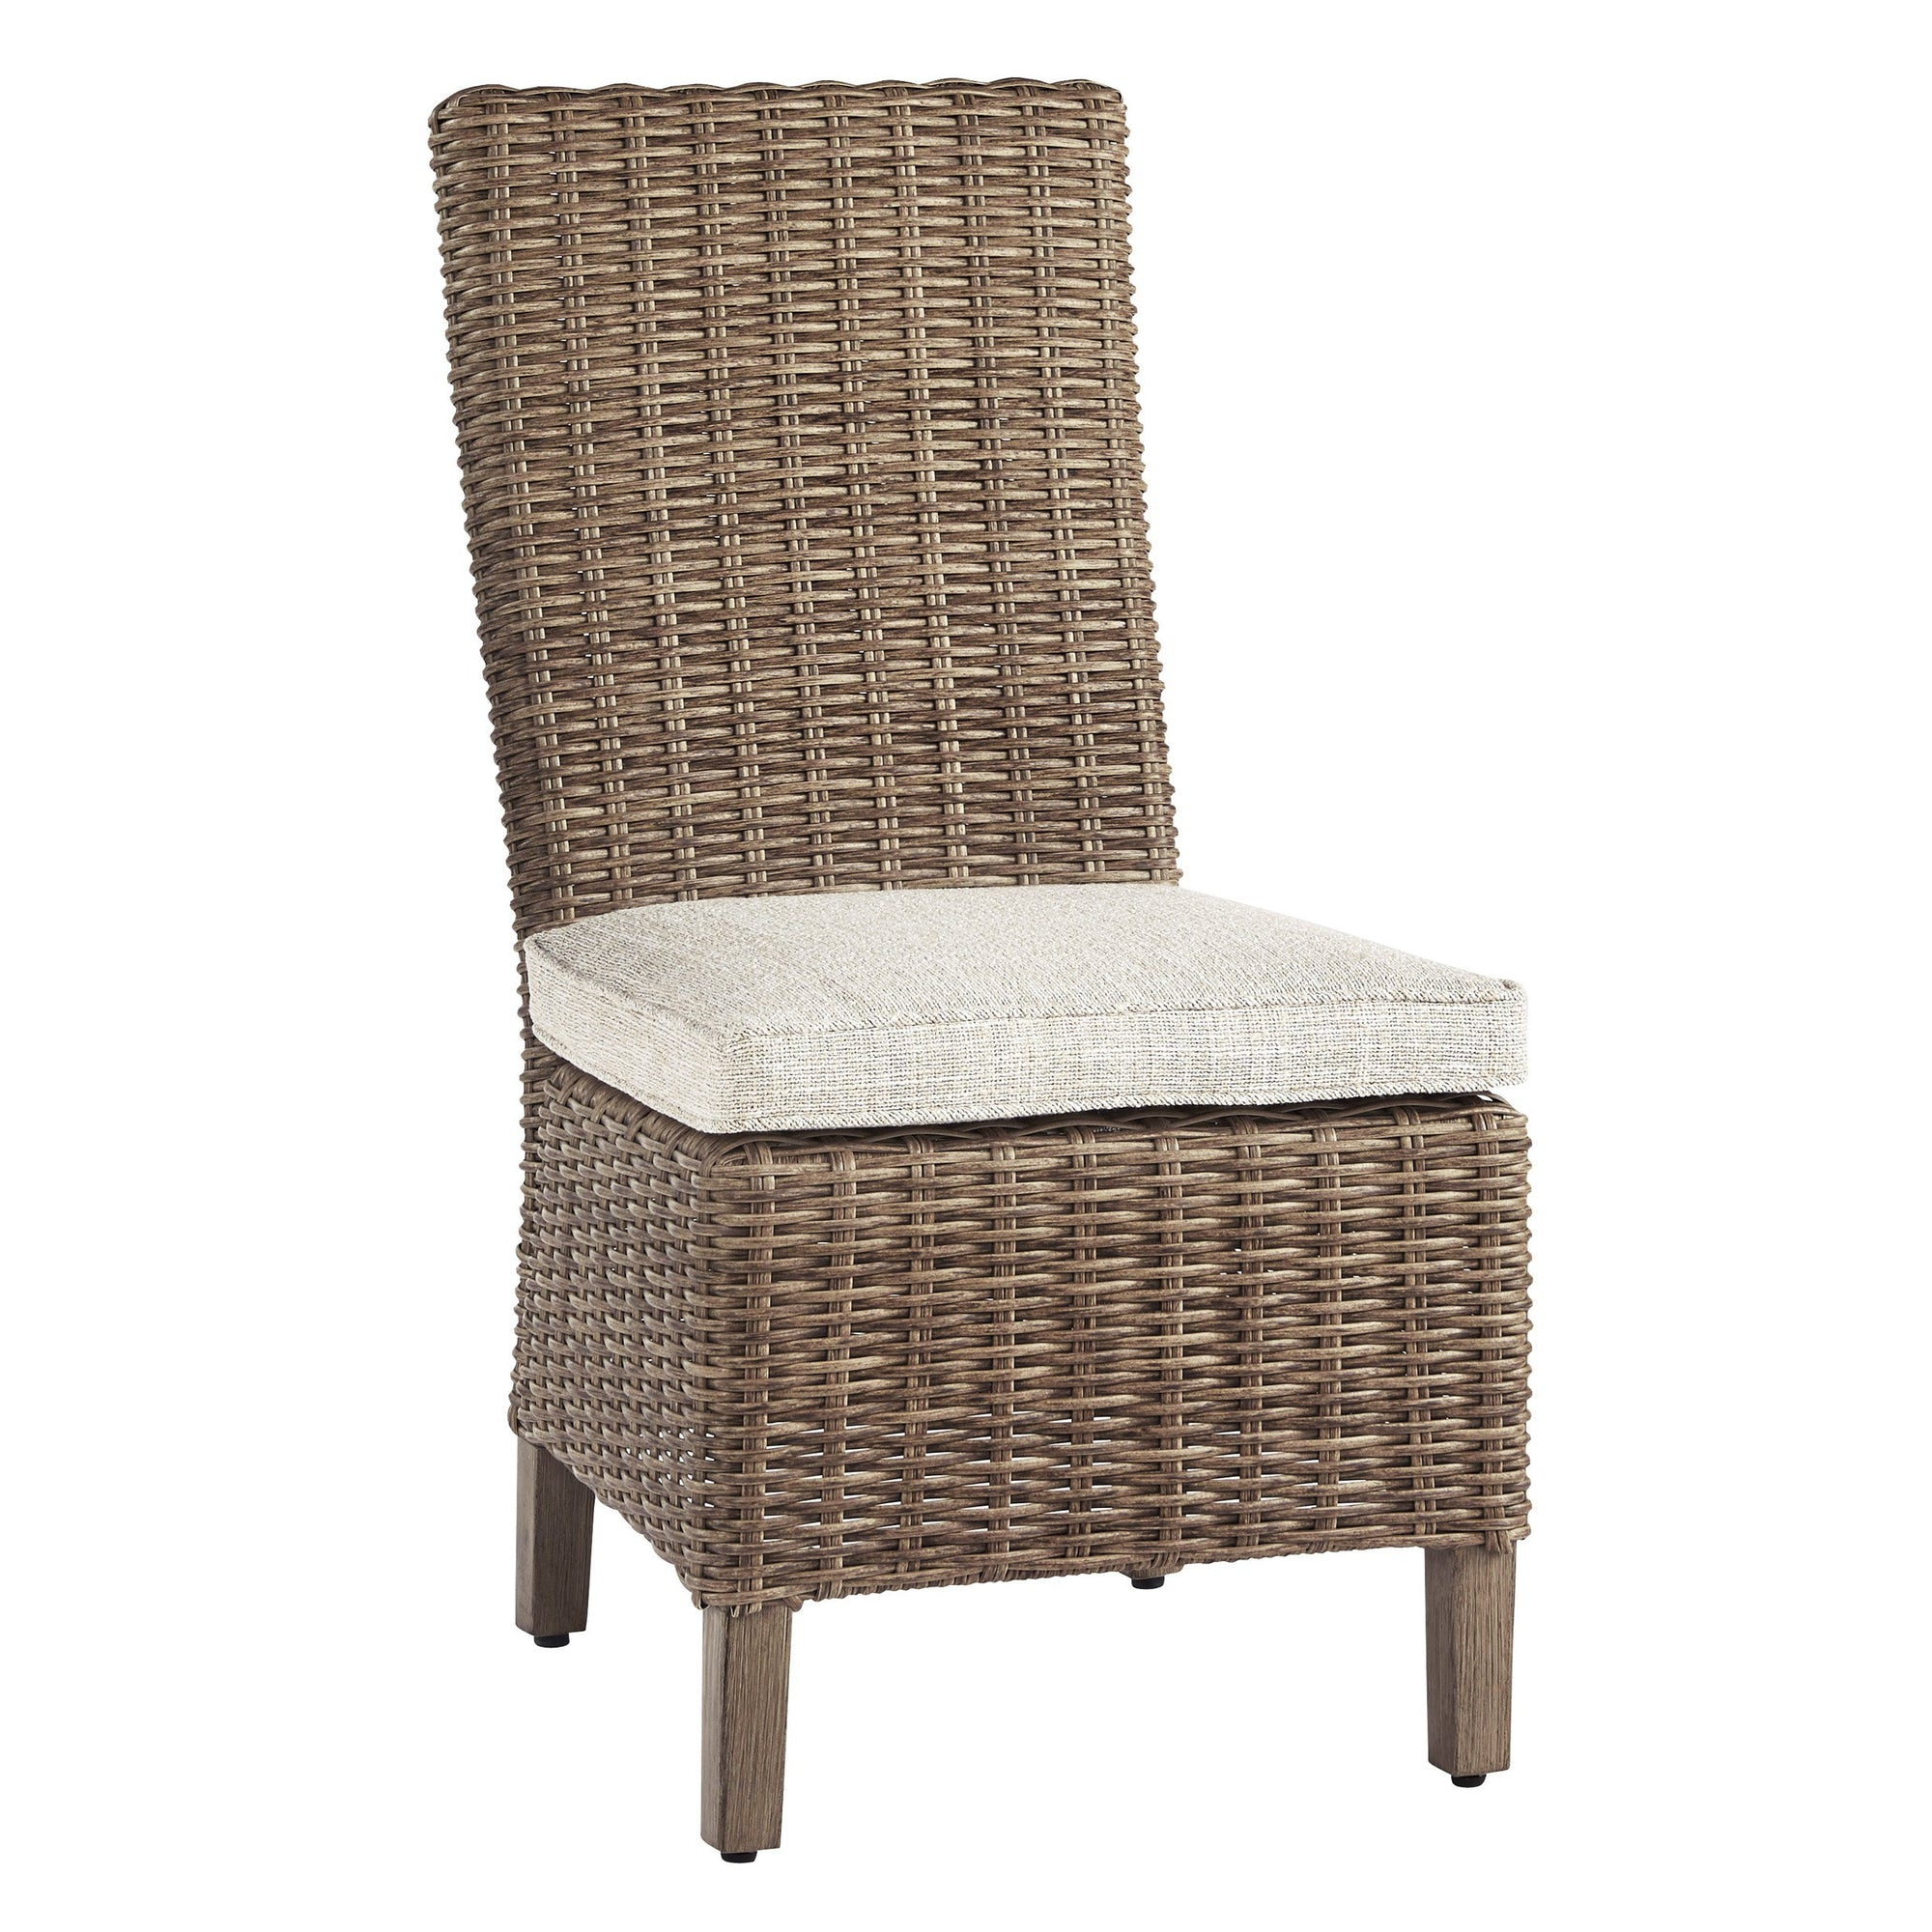 Fire Island Outdoor Side Chair with Cushion